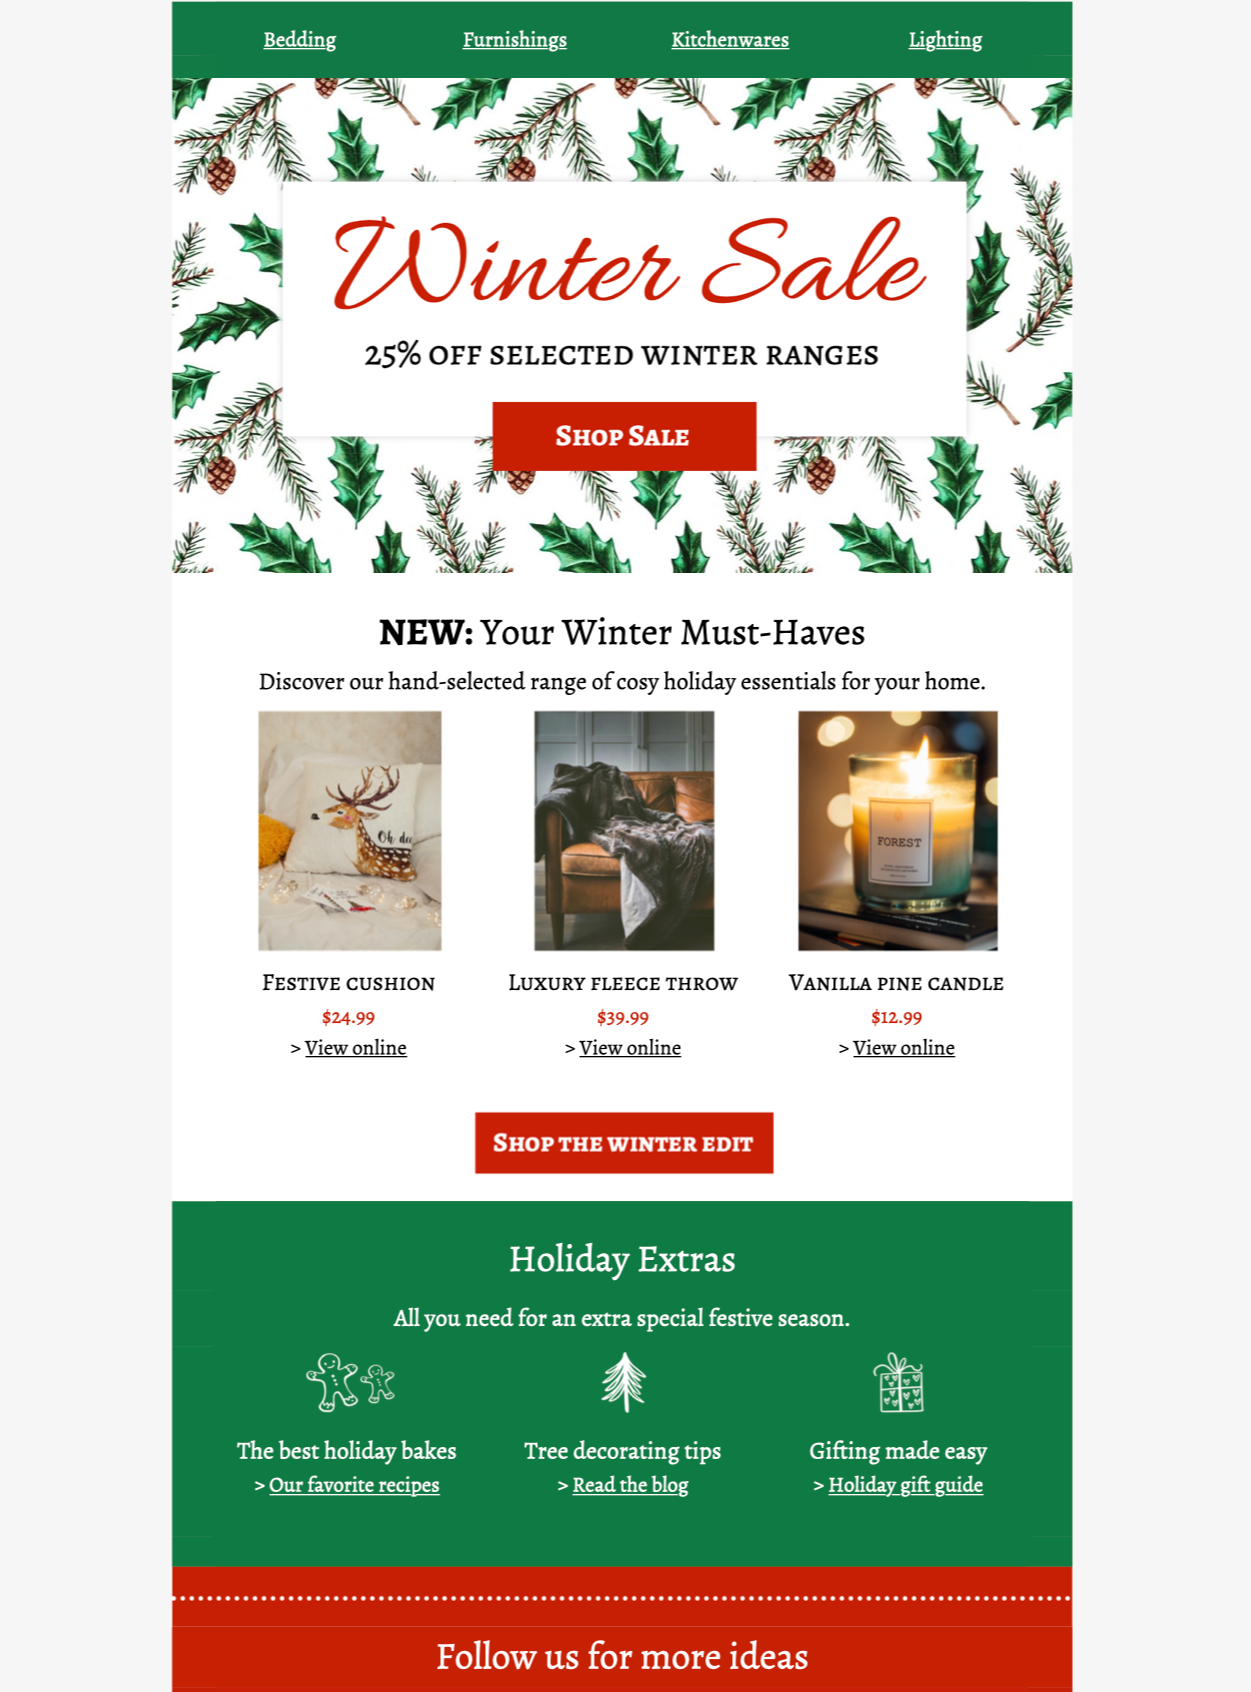 Winter sale email template